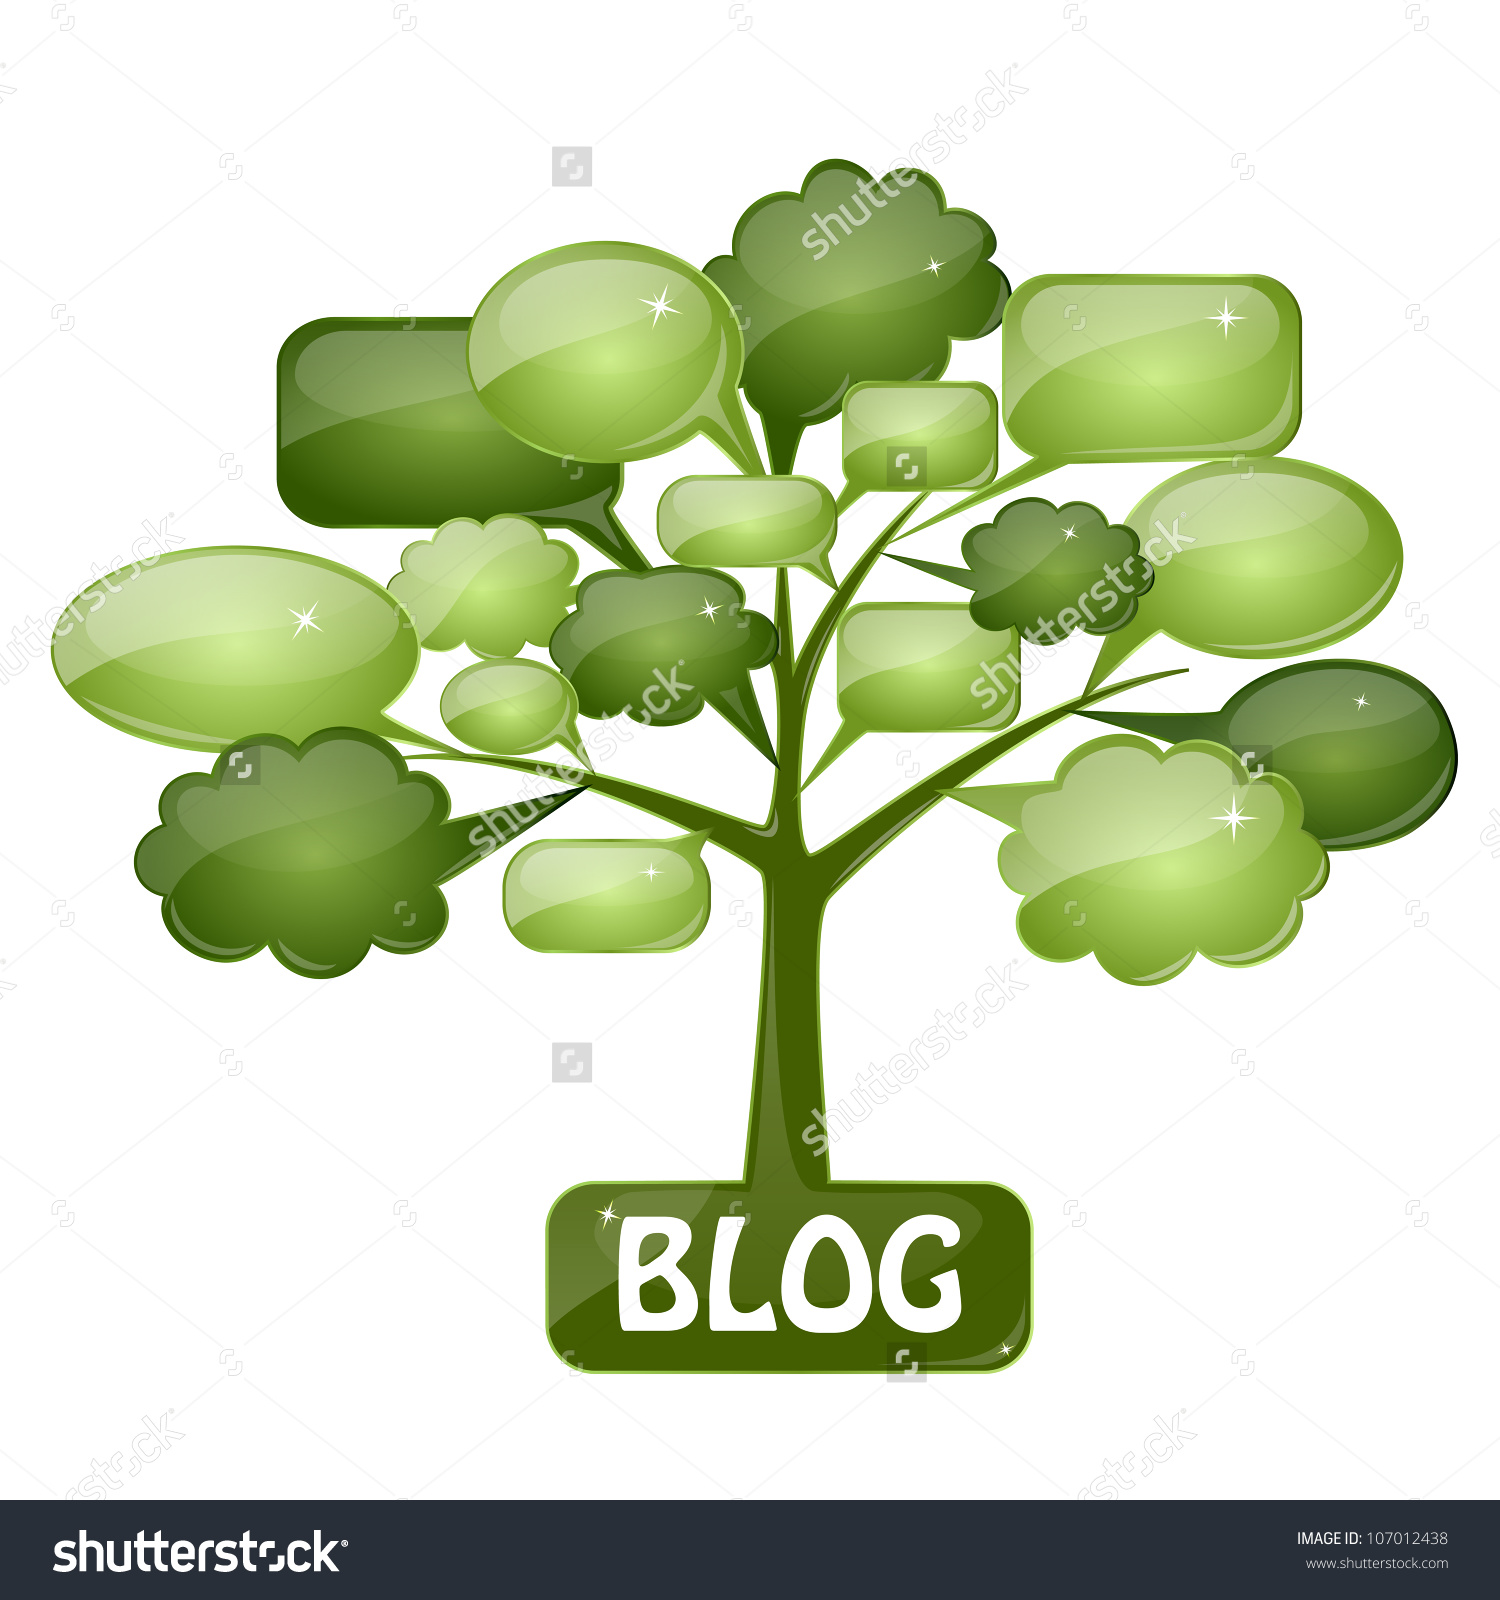 Green Tree With Speech Bubbles As The Icon For Blog Or Forum. You.